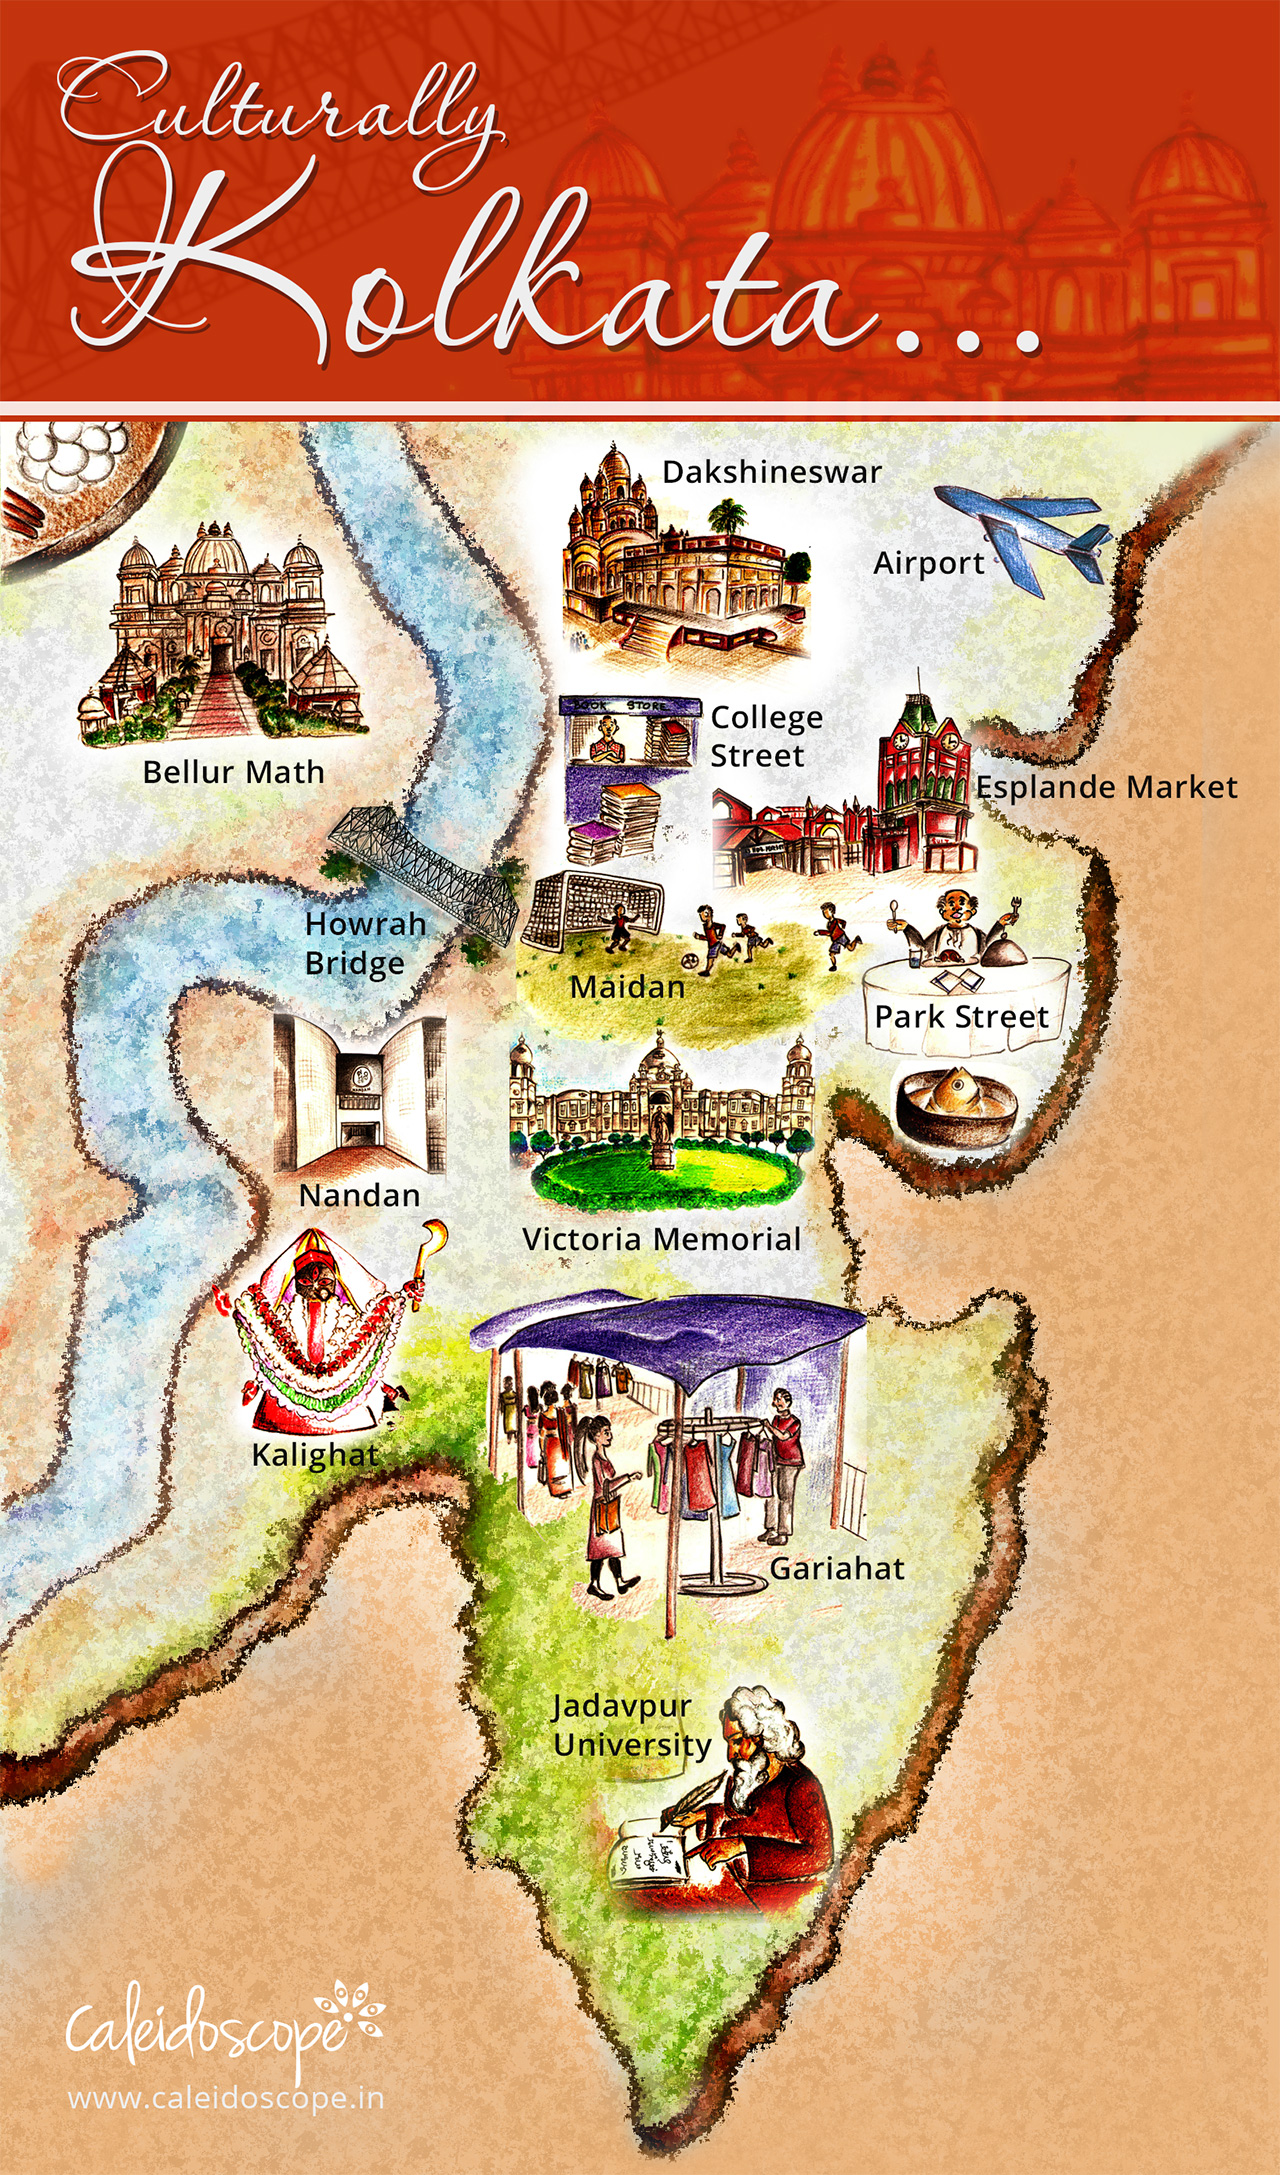 Kolkata Infographic - Places to visit in Kolkata